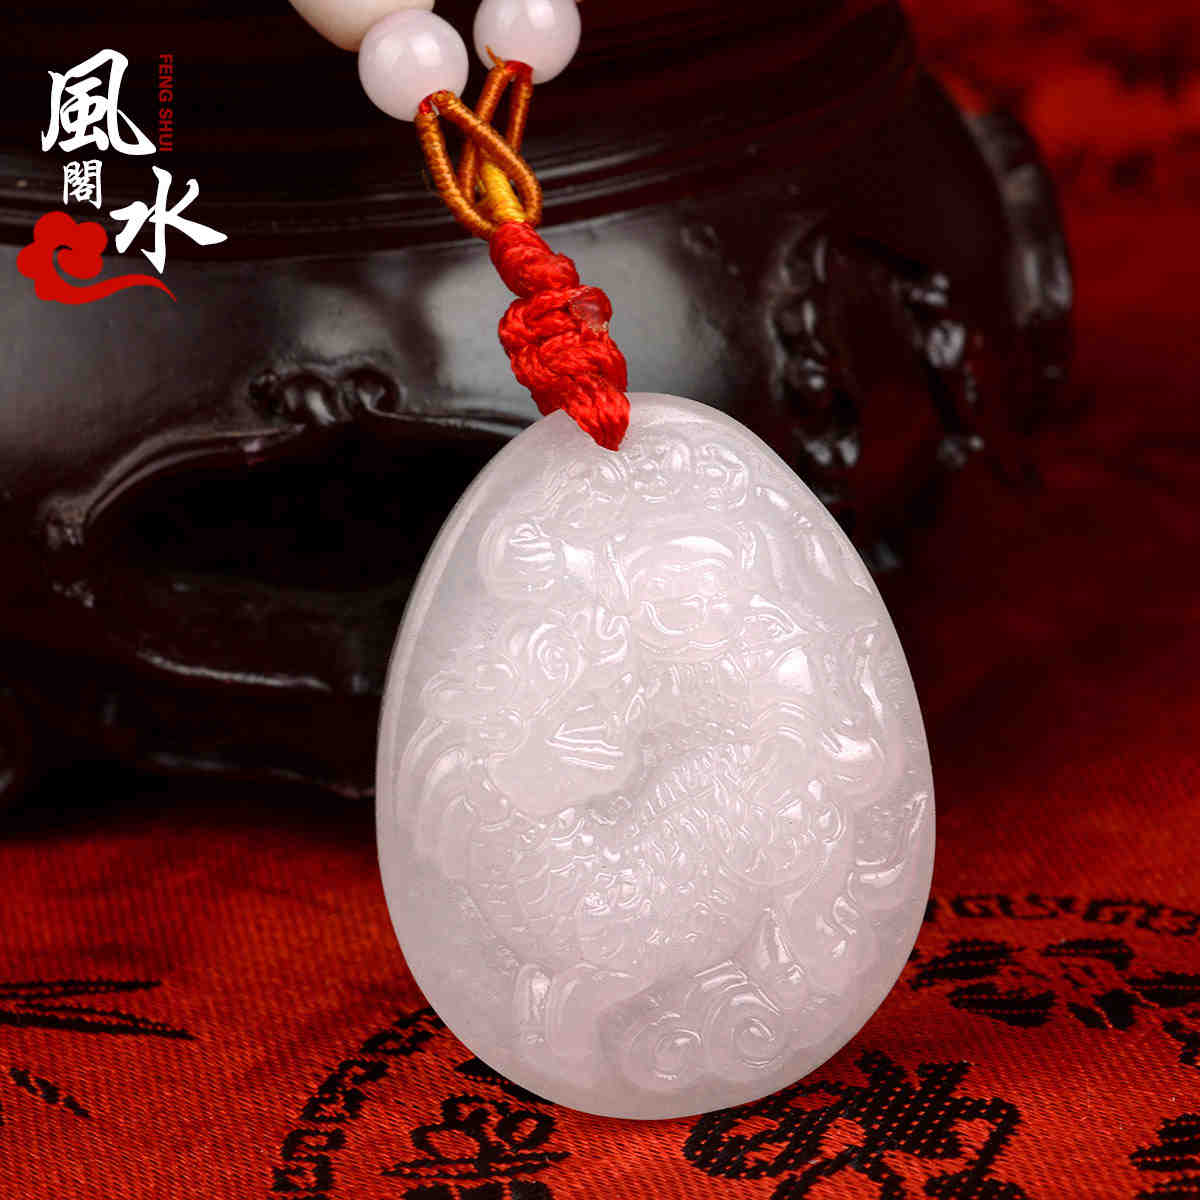 Feng shui court 2016 twelve zodiac year of the monkey king monkey monkey mascot wealthy jade pendant pendant natal